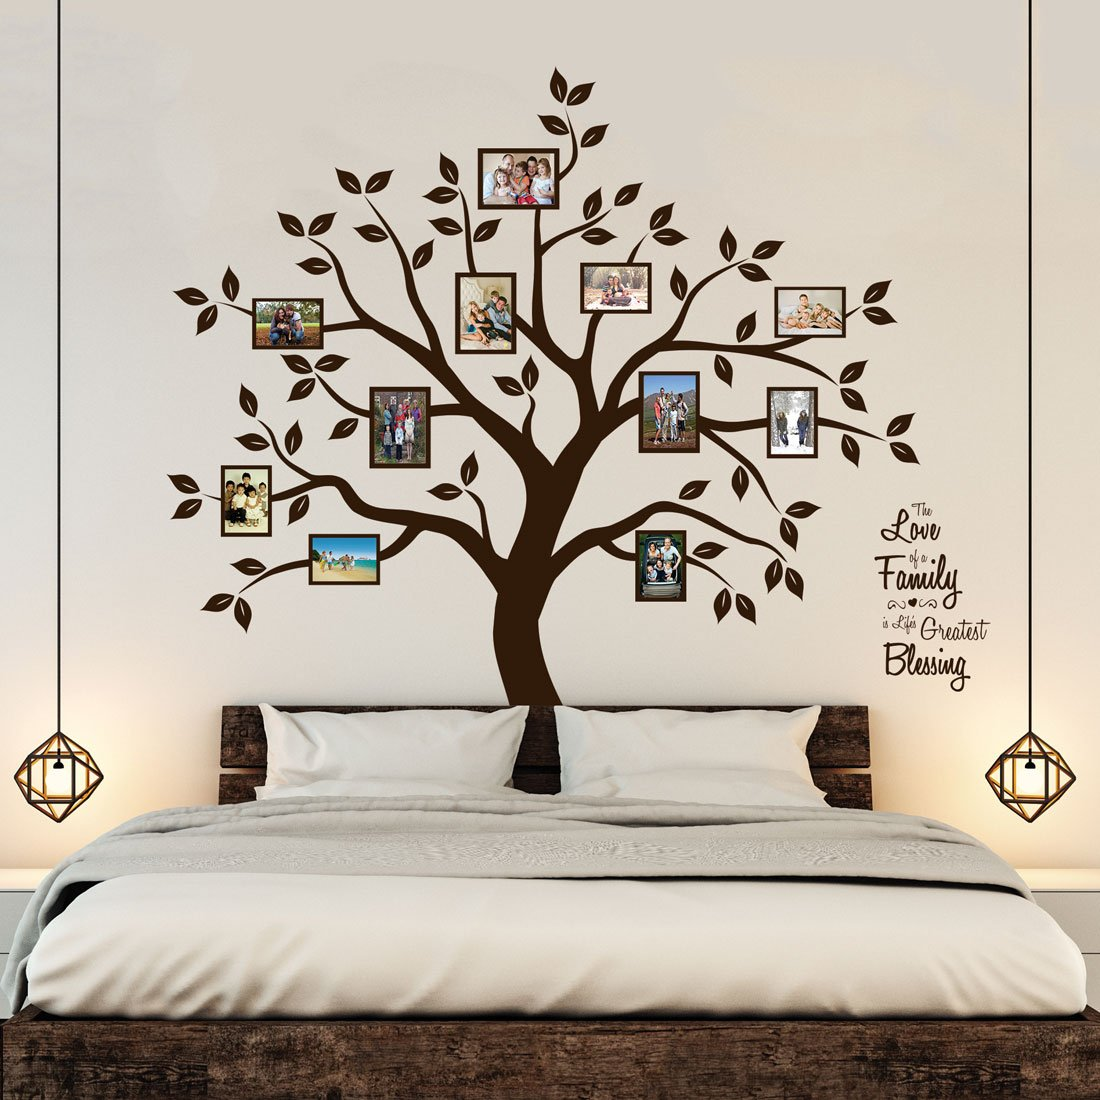 amazon com timber artbox beautiful family tree wall decal with amazon com timber artbox beautiful family tree wall decal with quote the only decor you need for living room bedroom baby